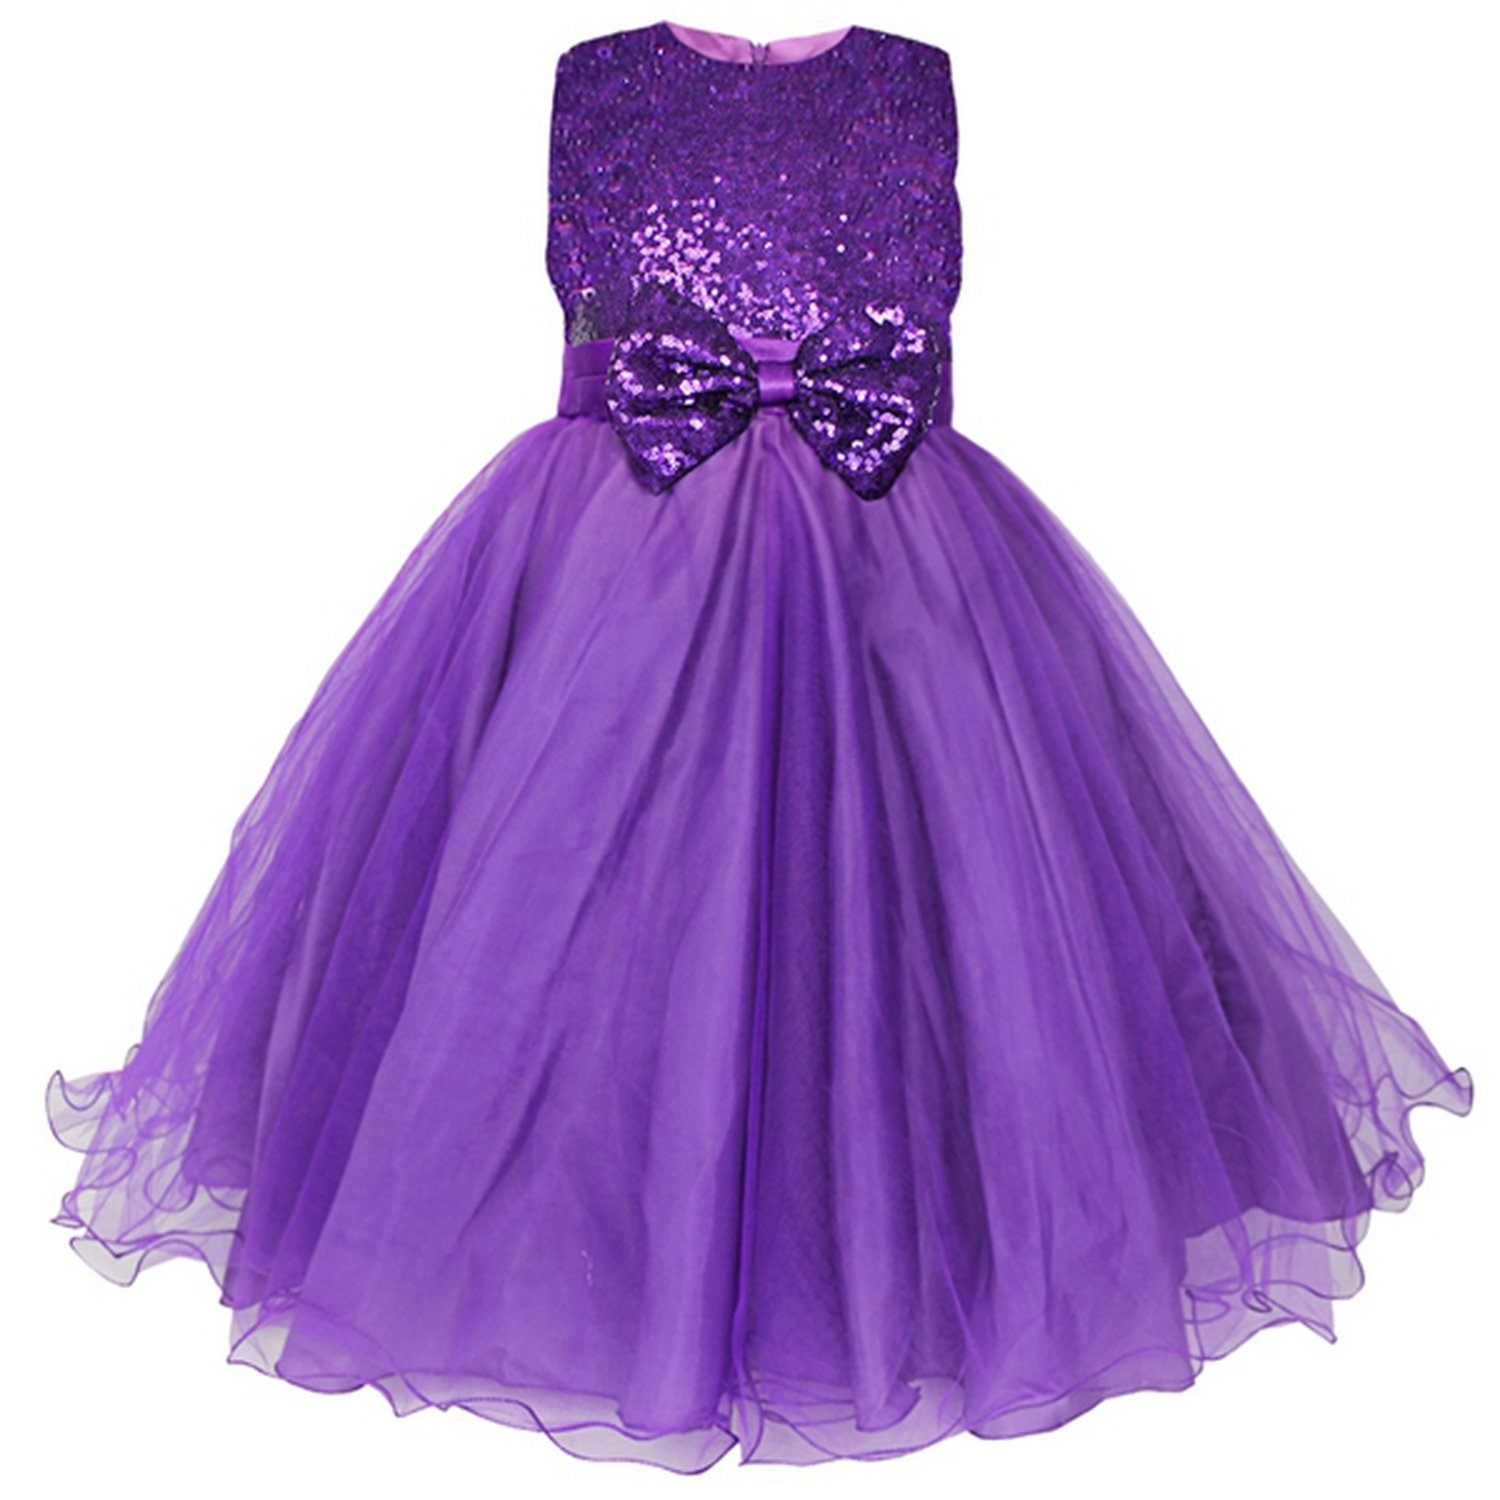 Knee-Length Kids Sequin Flower Girls Dress Kids Pageant Party Wedding Ball Gown Prom Princess Formal Occassion Girls Dress,Purple,Child-10